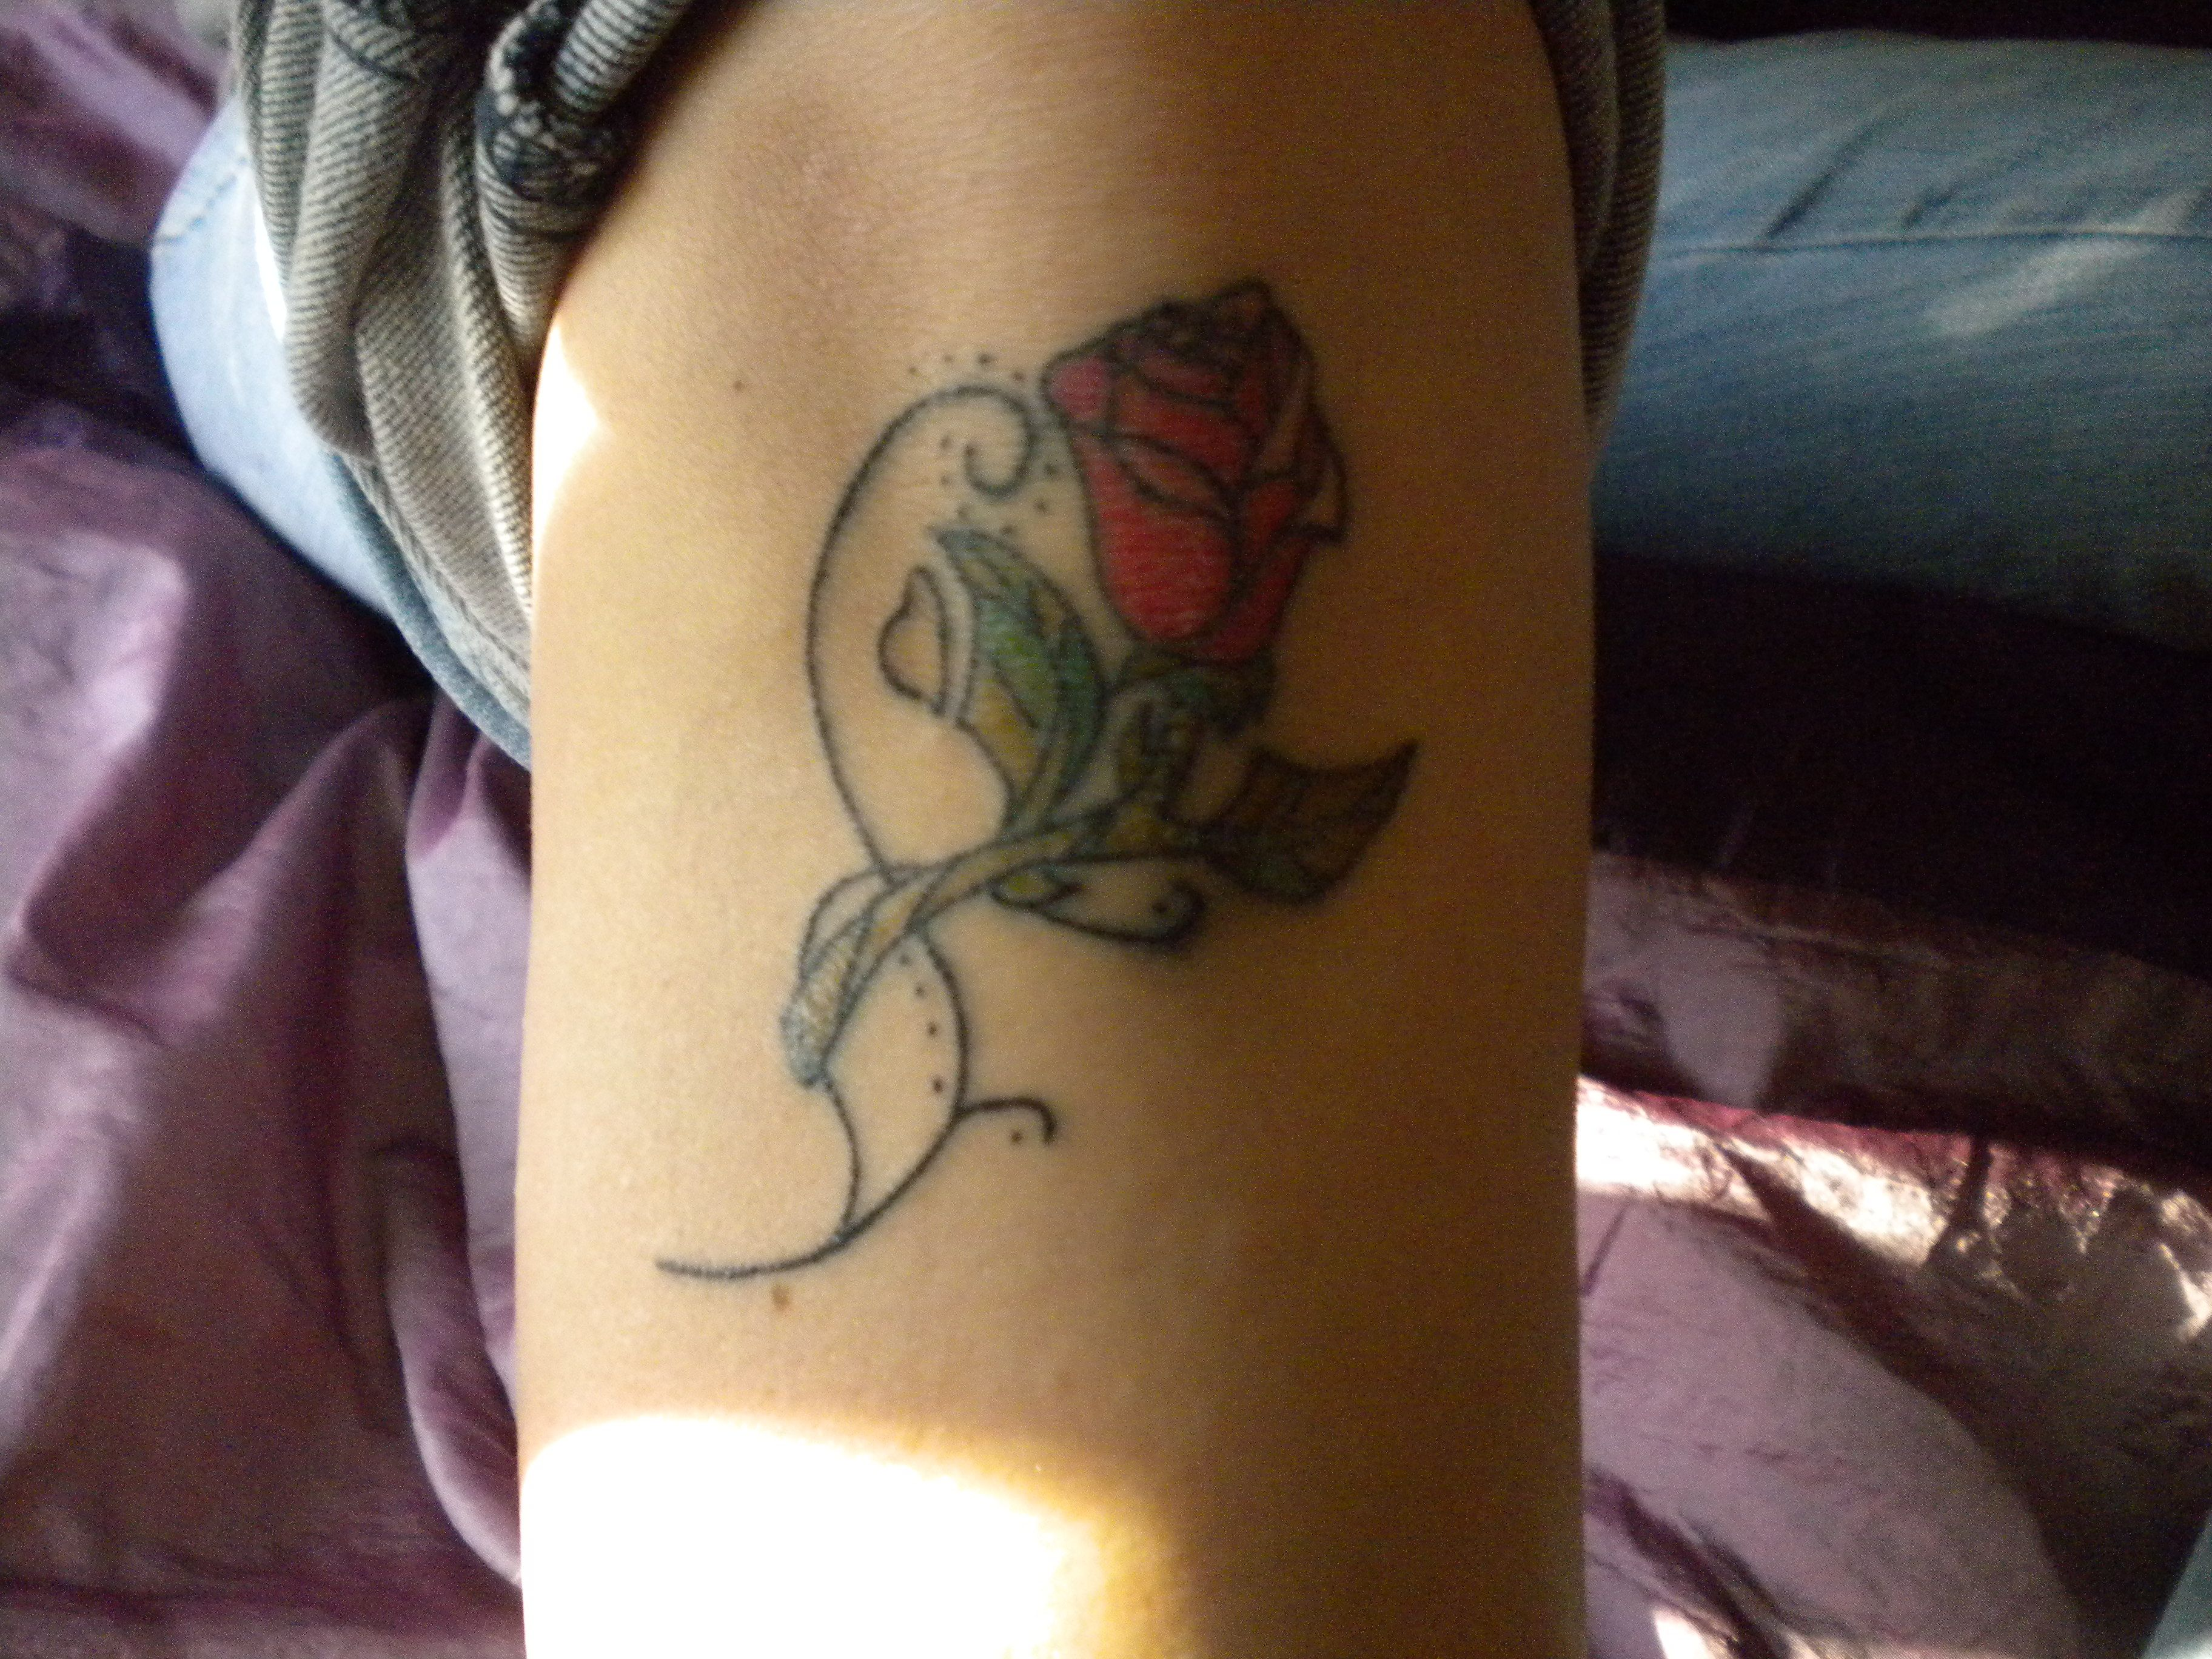 I know rose tatts are pretty much tacky, but when it's ...